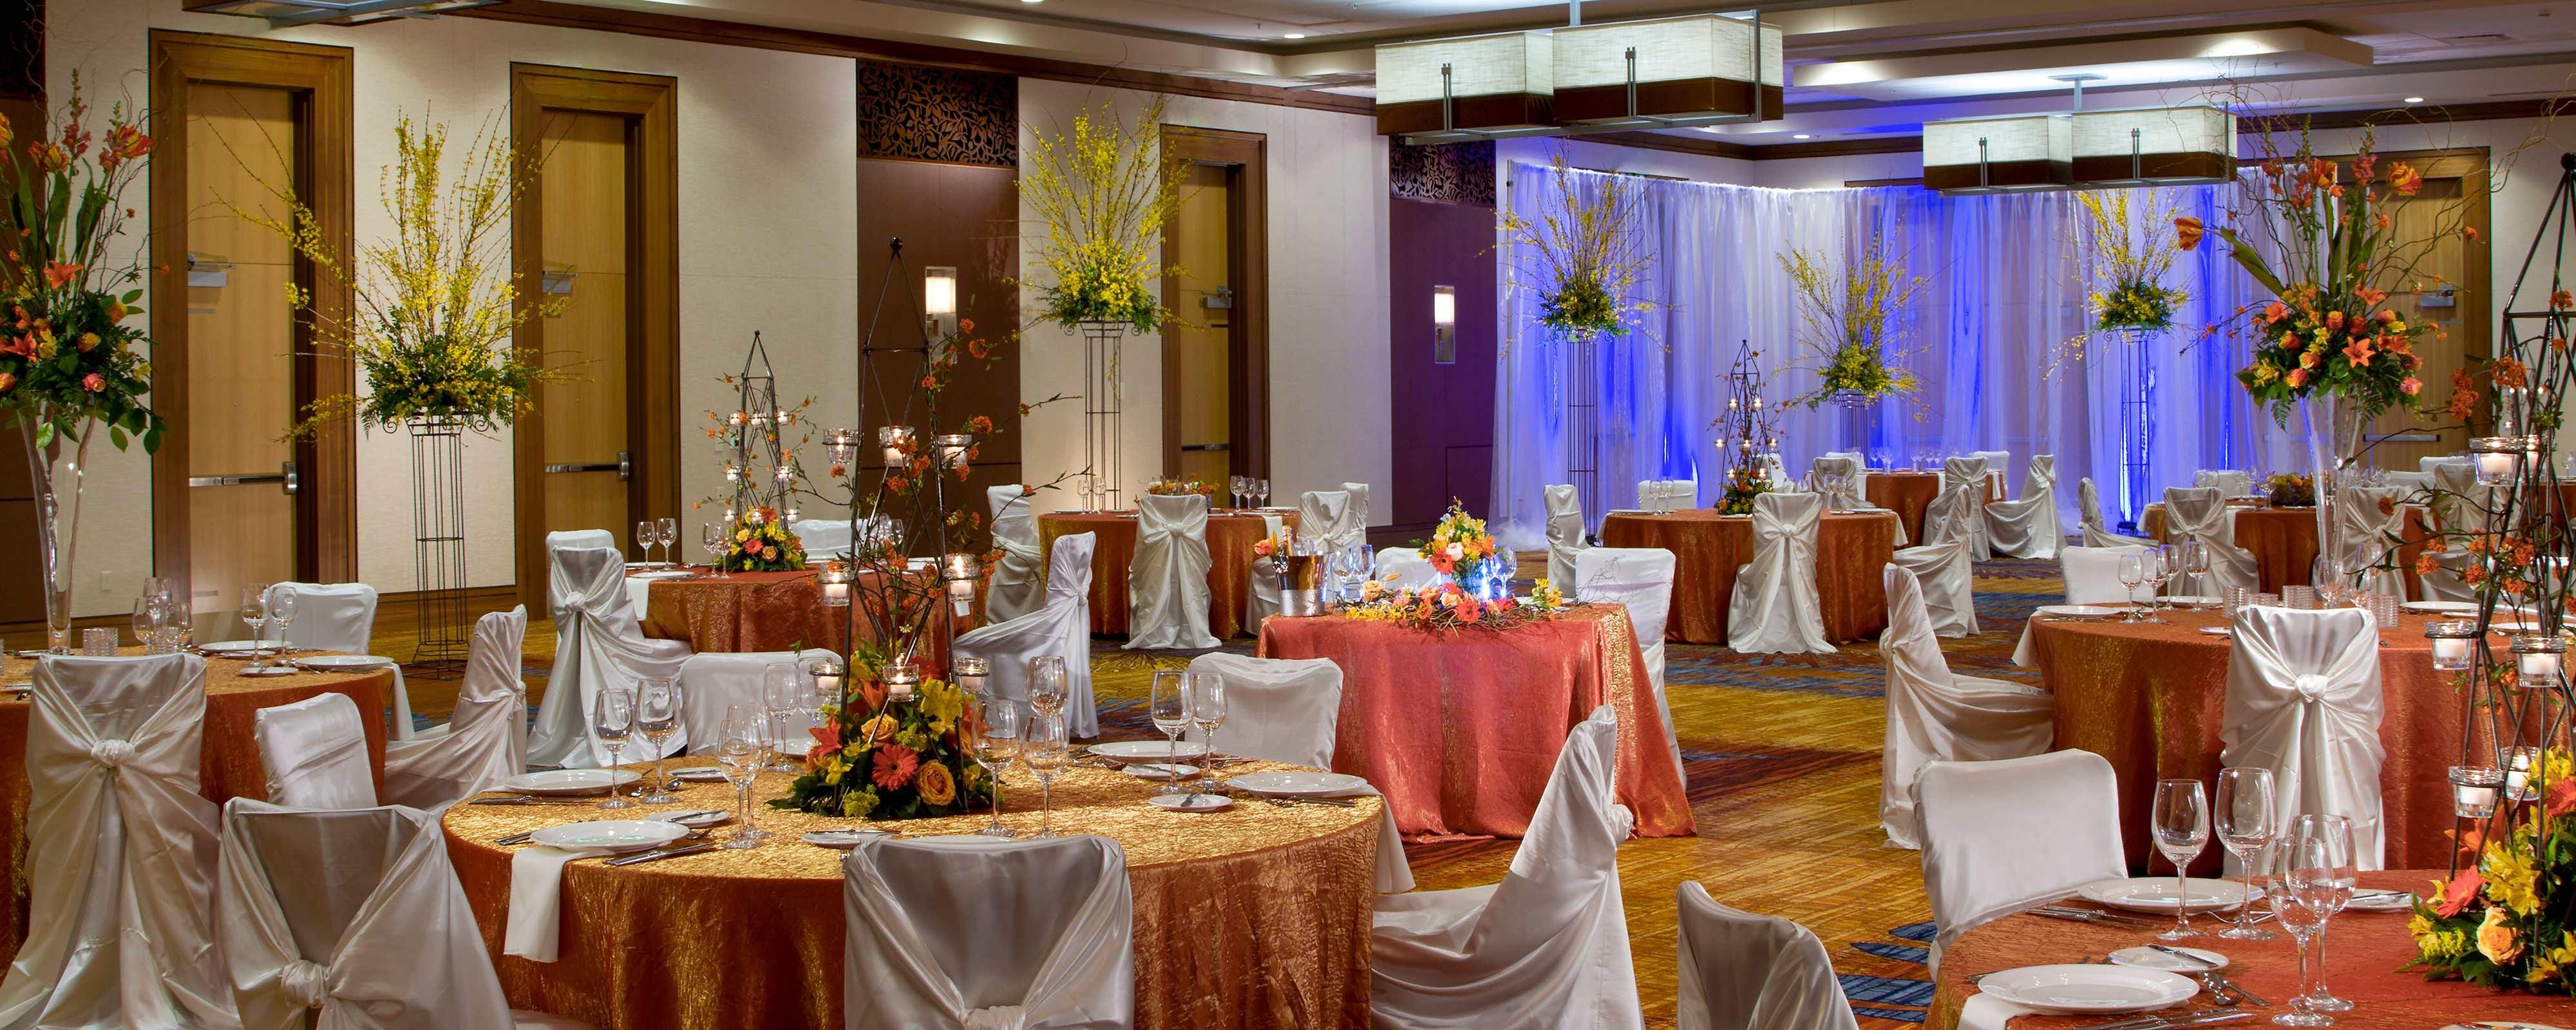 Indianapolis Wedding Venues.Reception And Wedding Venues Downtown Indianapolis Jw